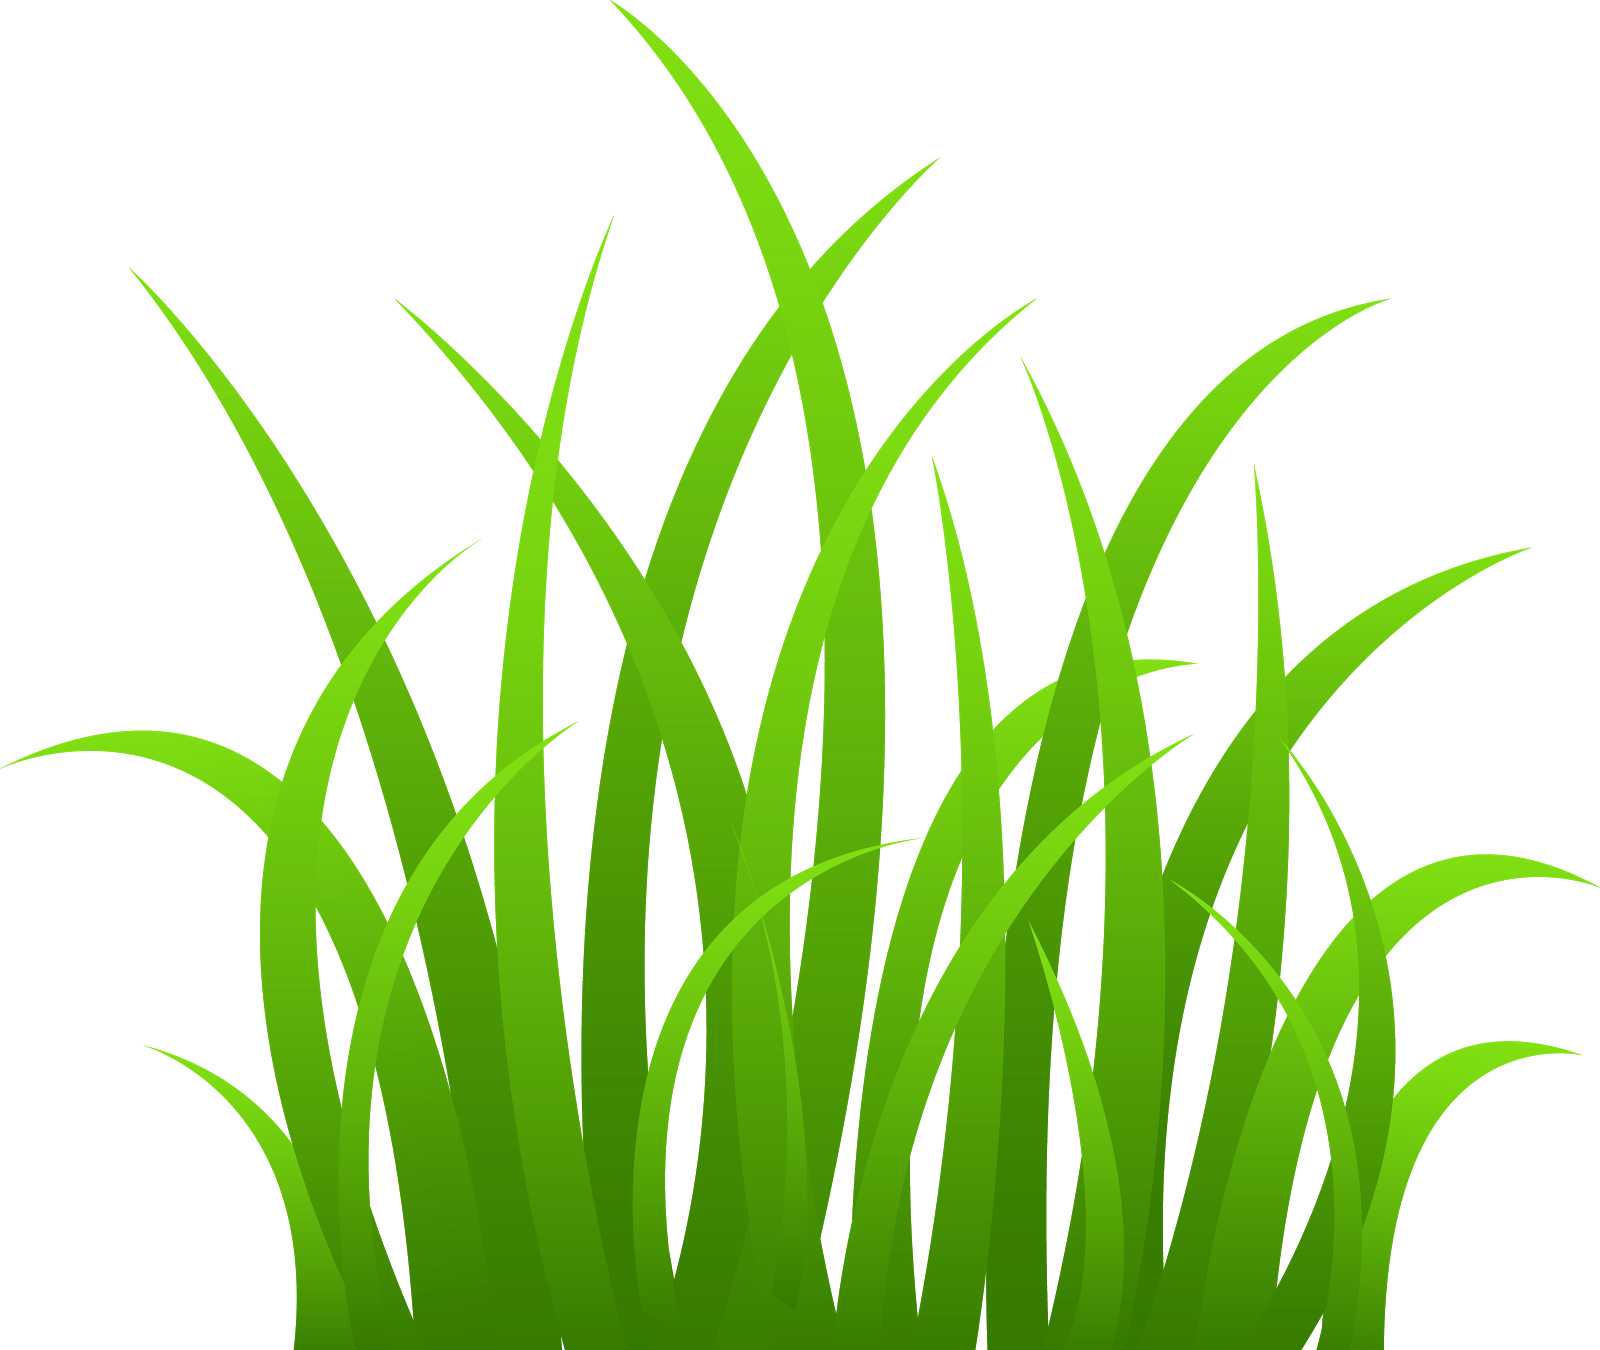 Sea clipart sea grass #2